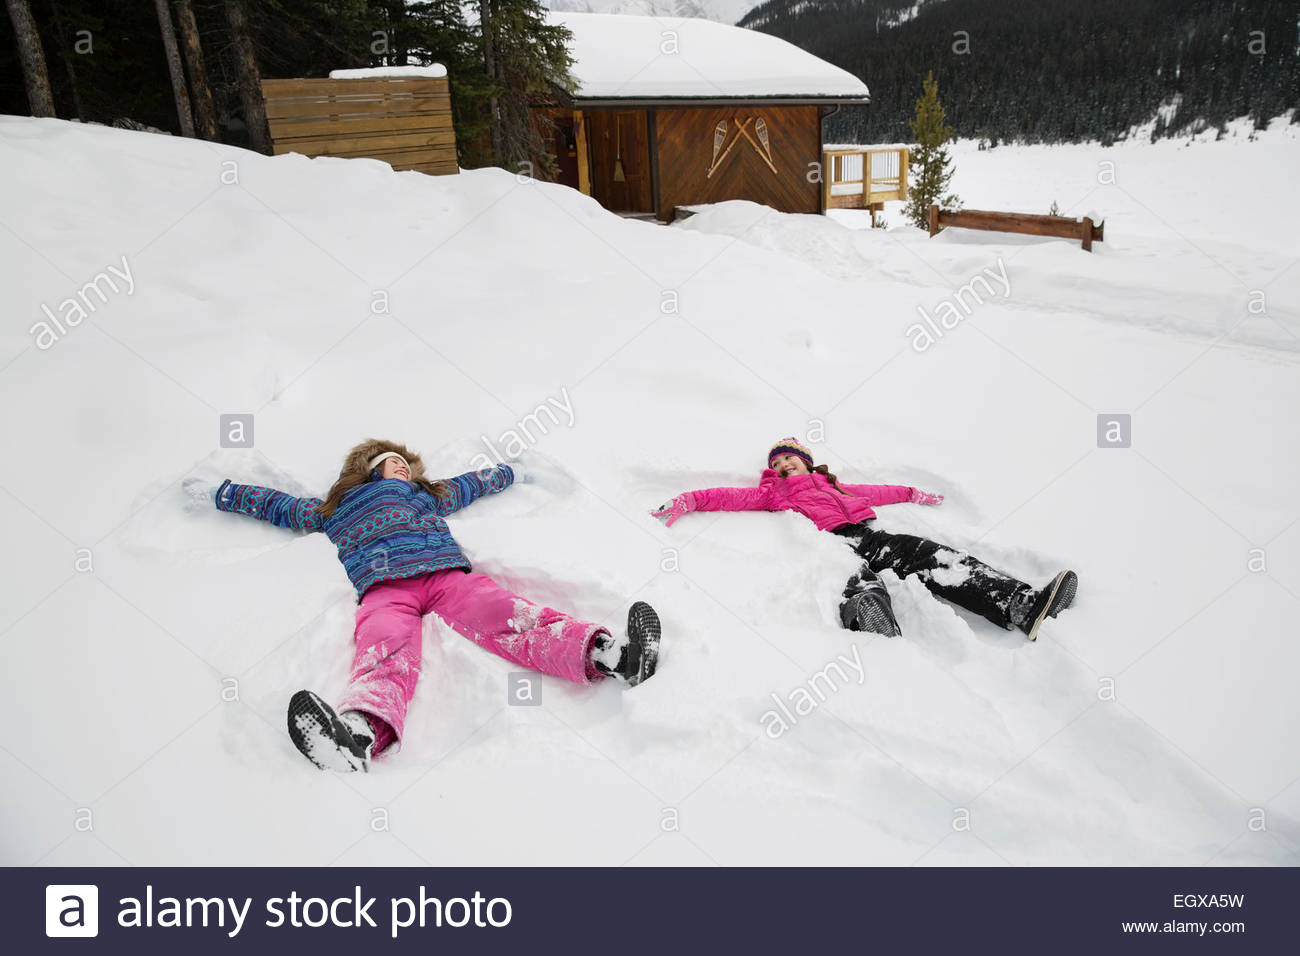 Girls making snow angels in snowy field - Stock Image